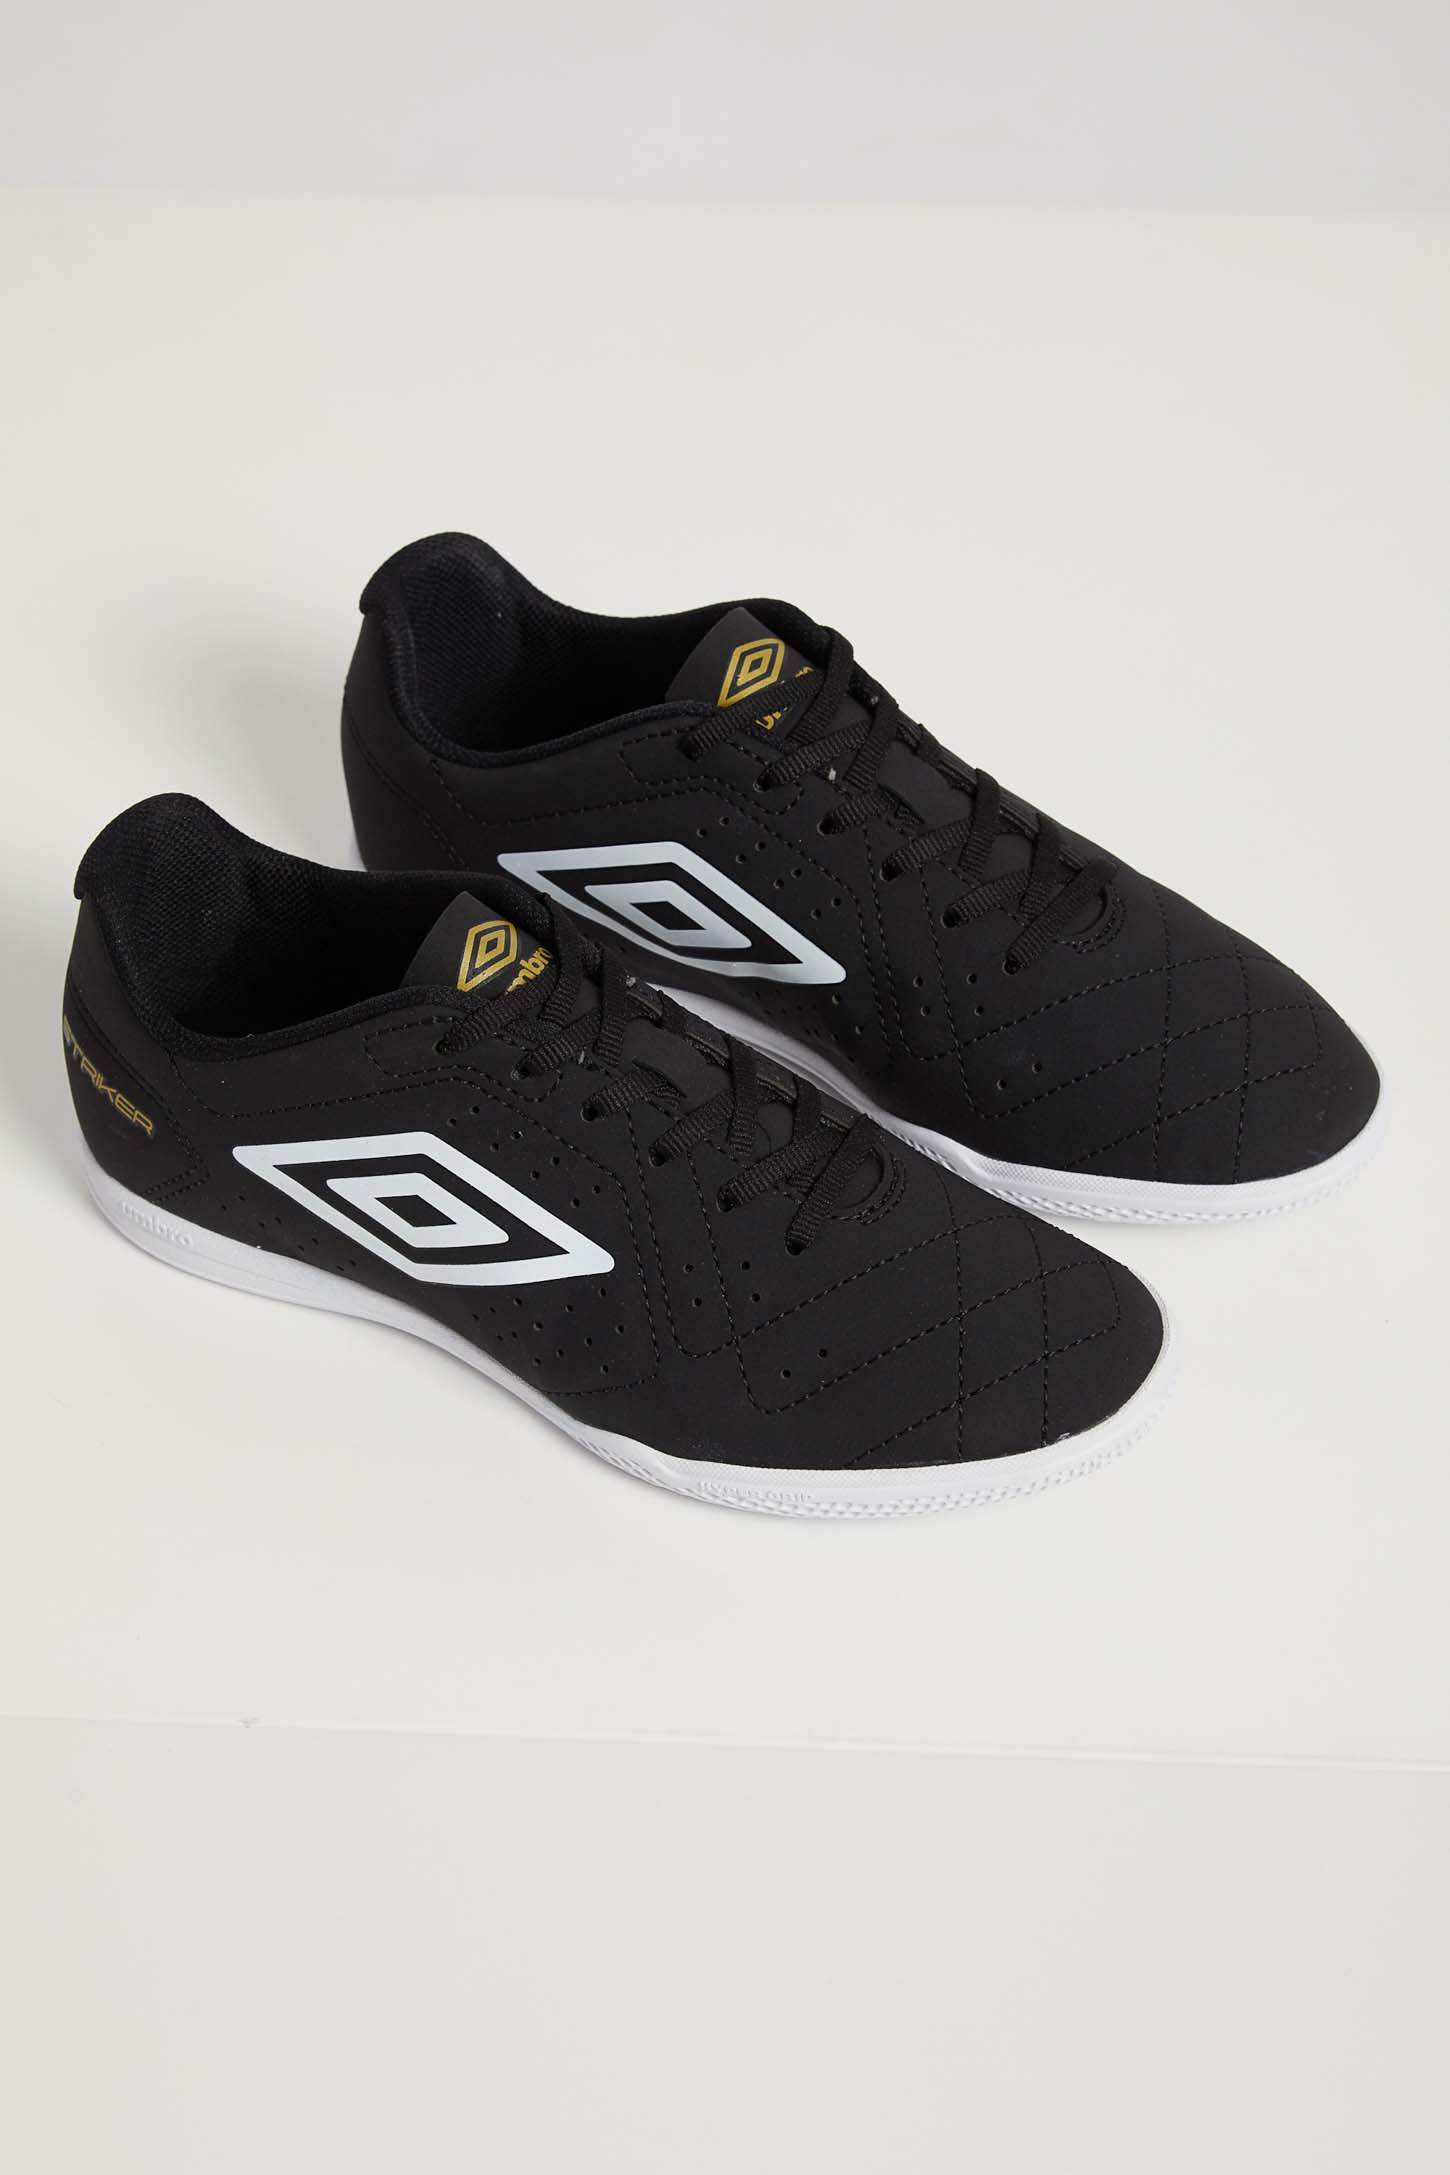 Chuteira-Indoor-Umbro-Striker-6-Preto